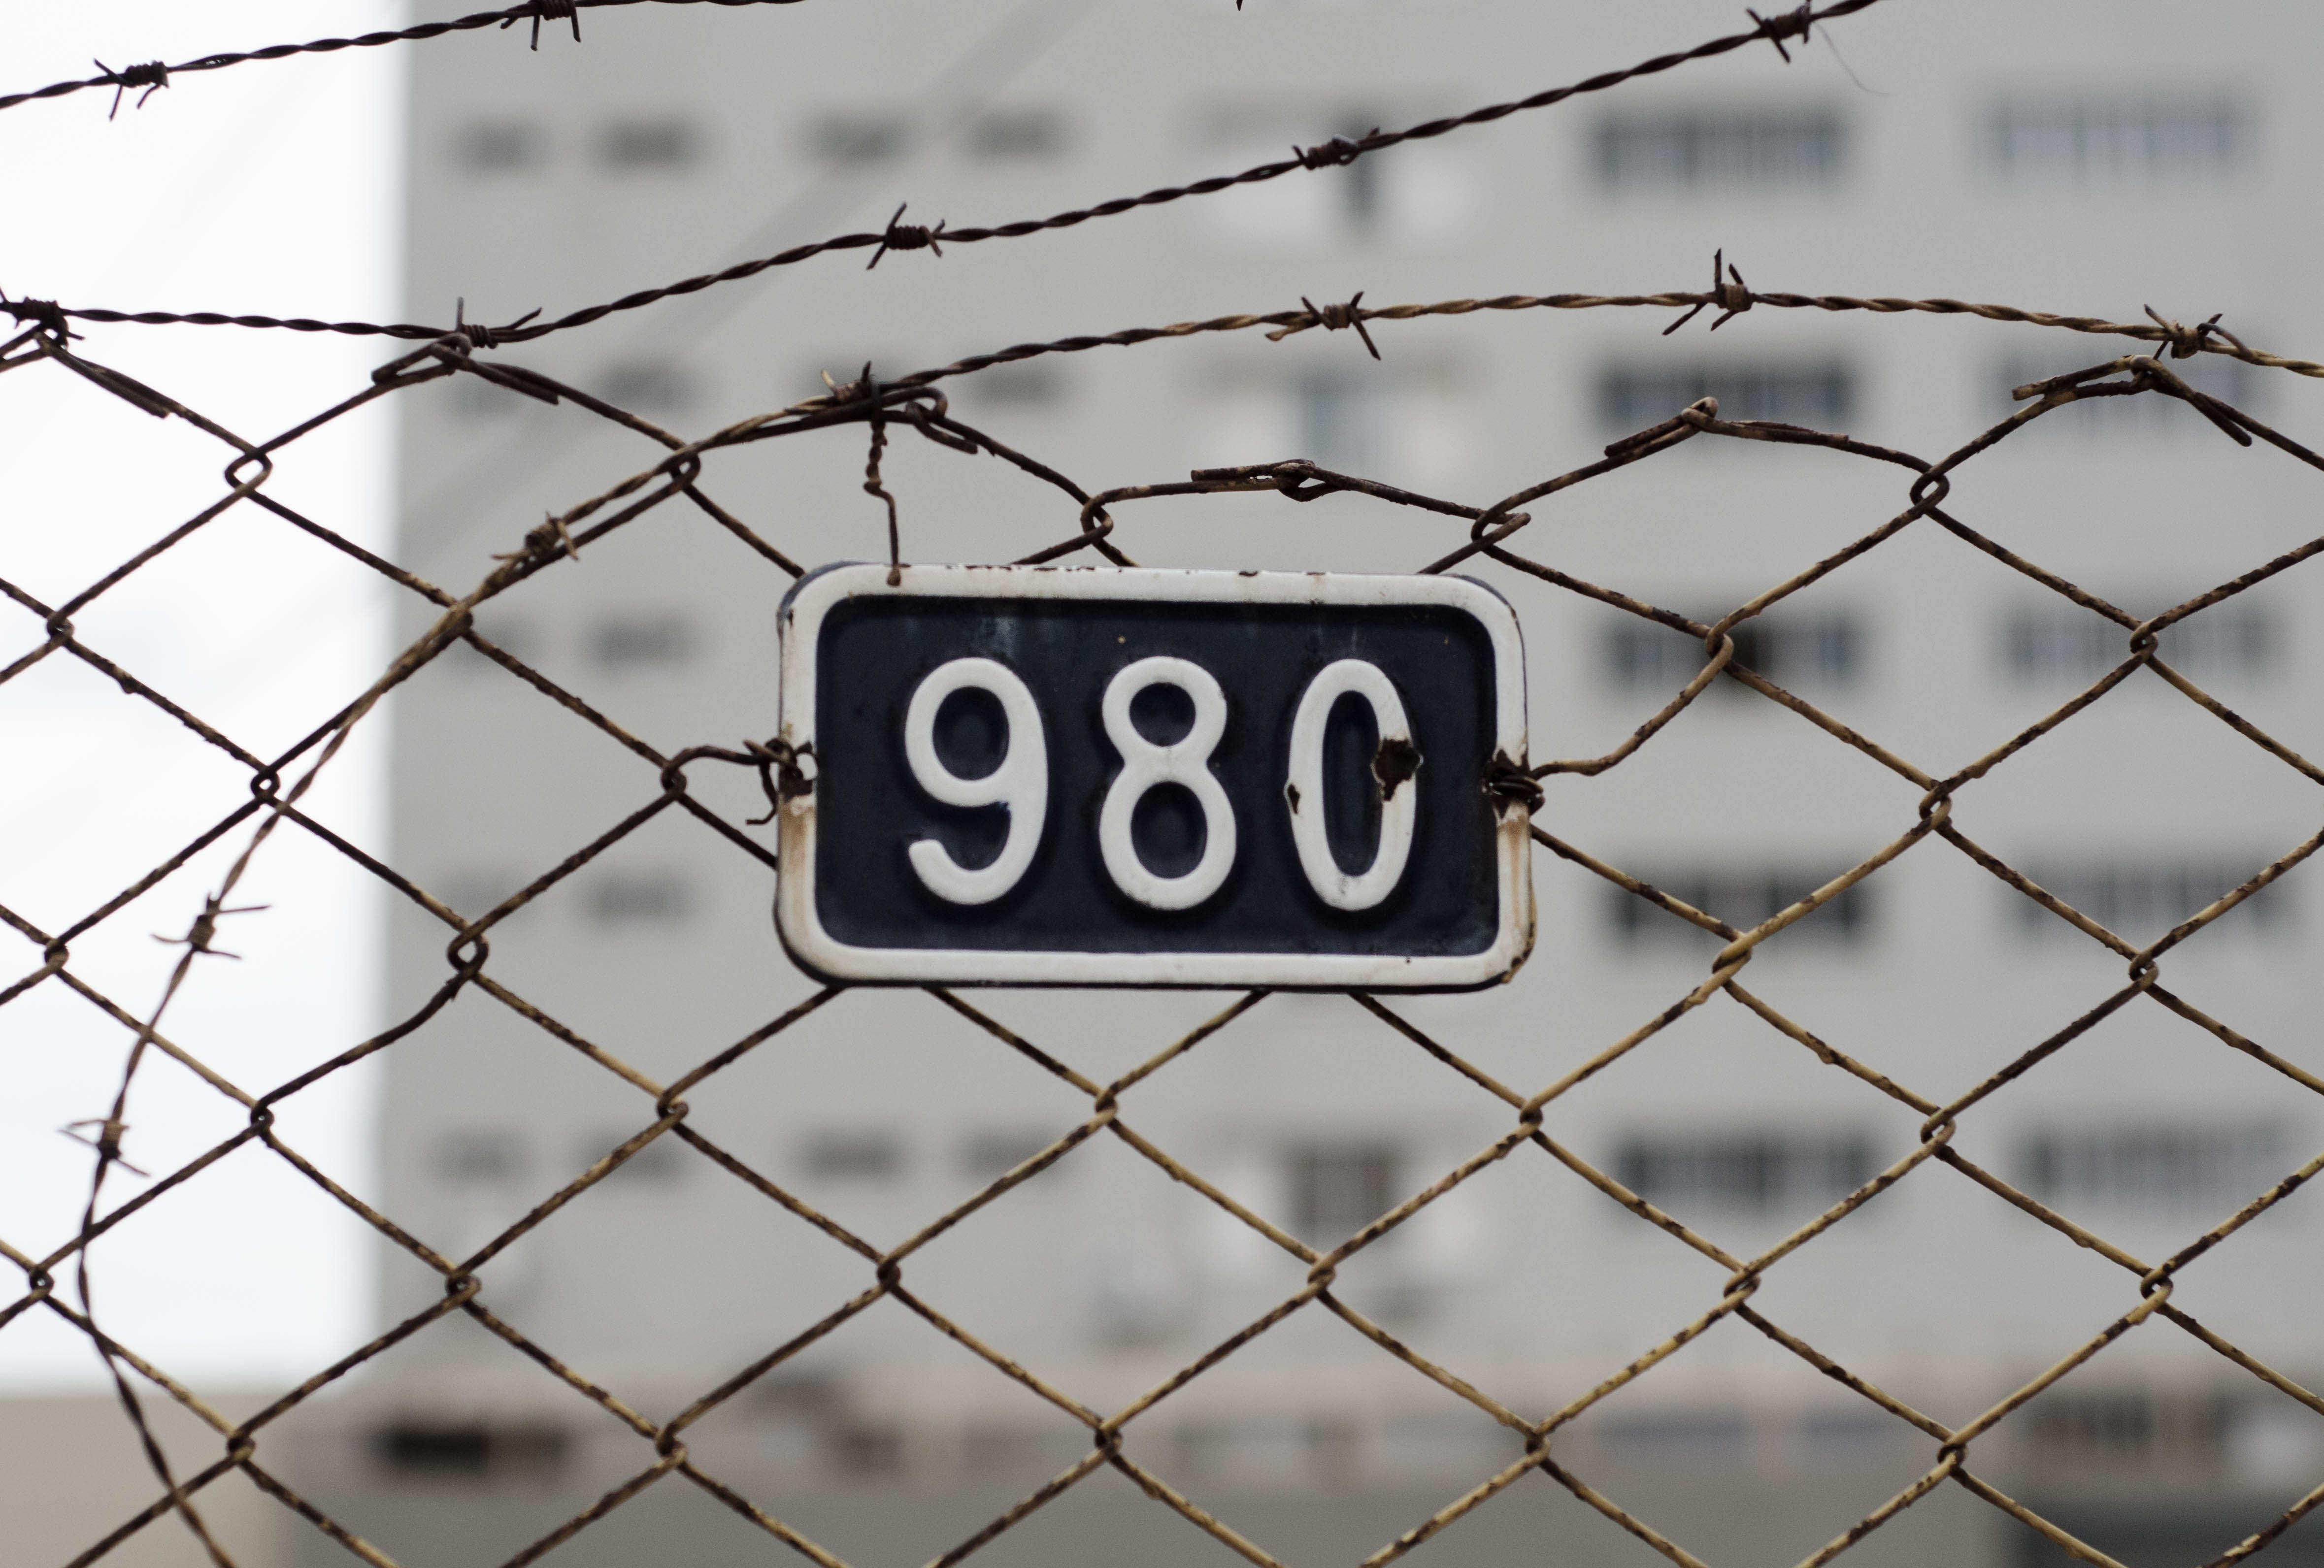 98c Plate on Fence